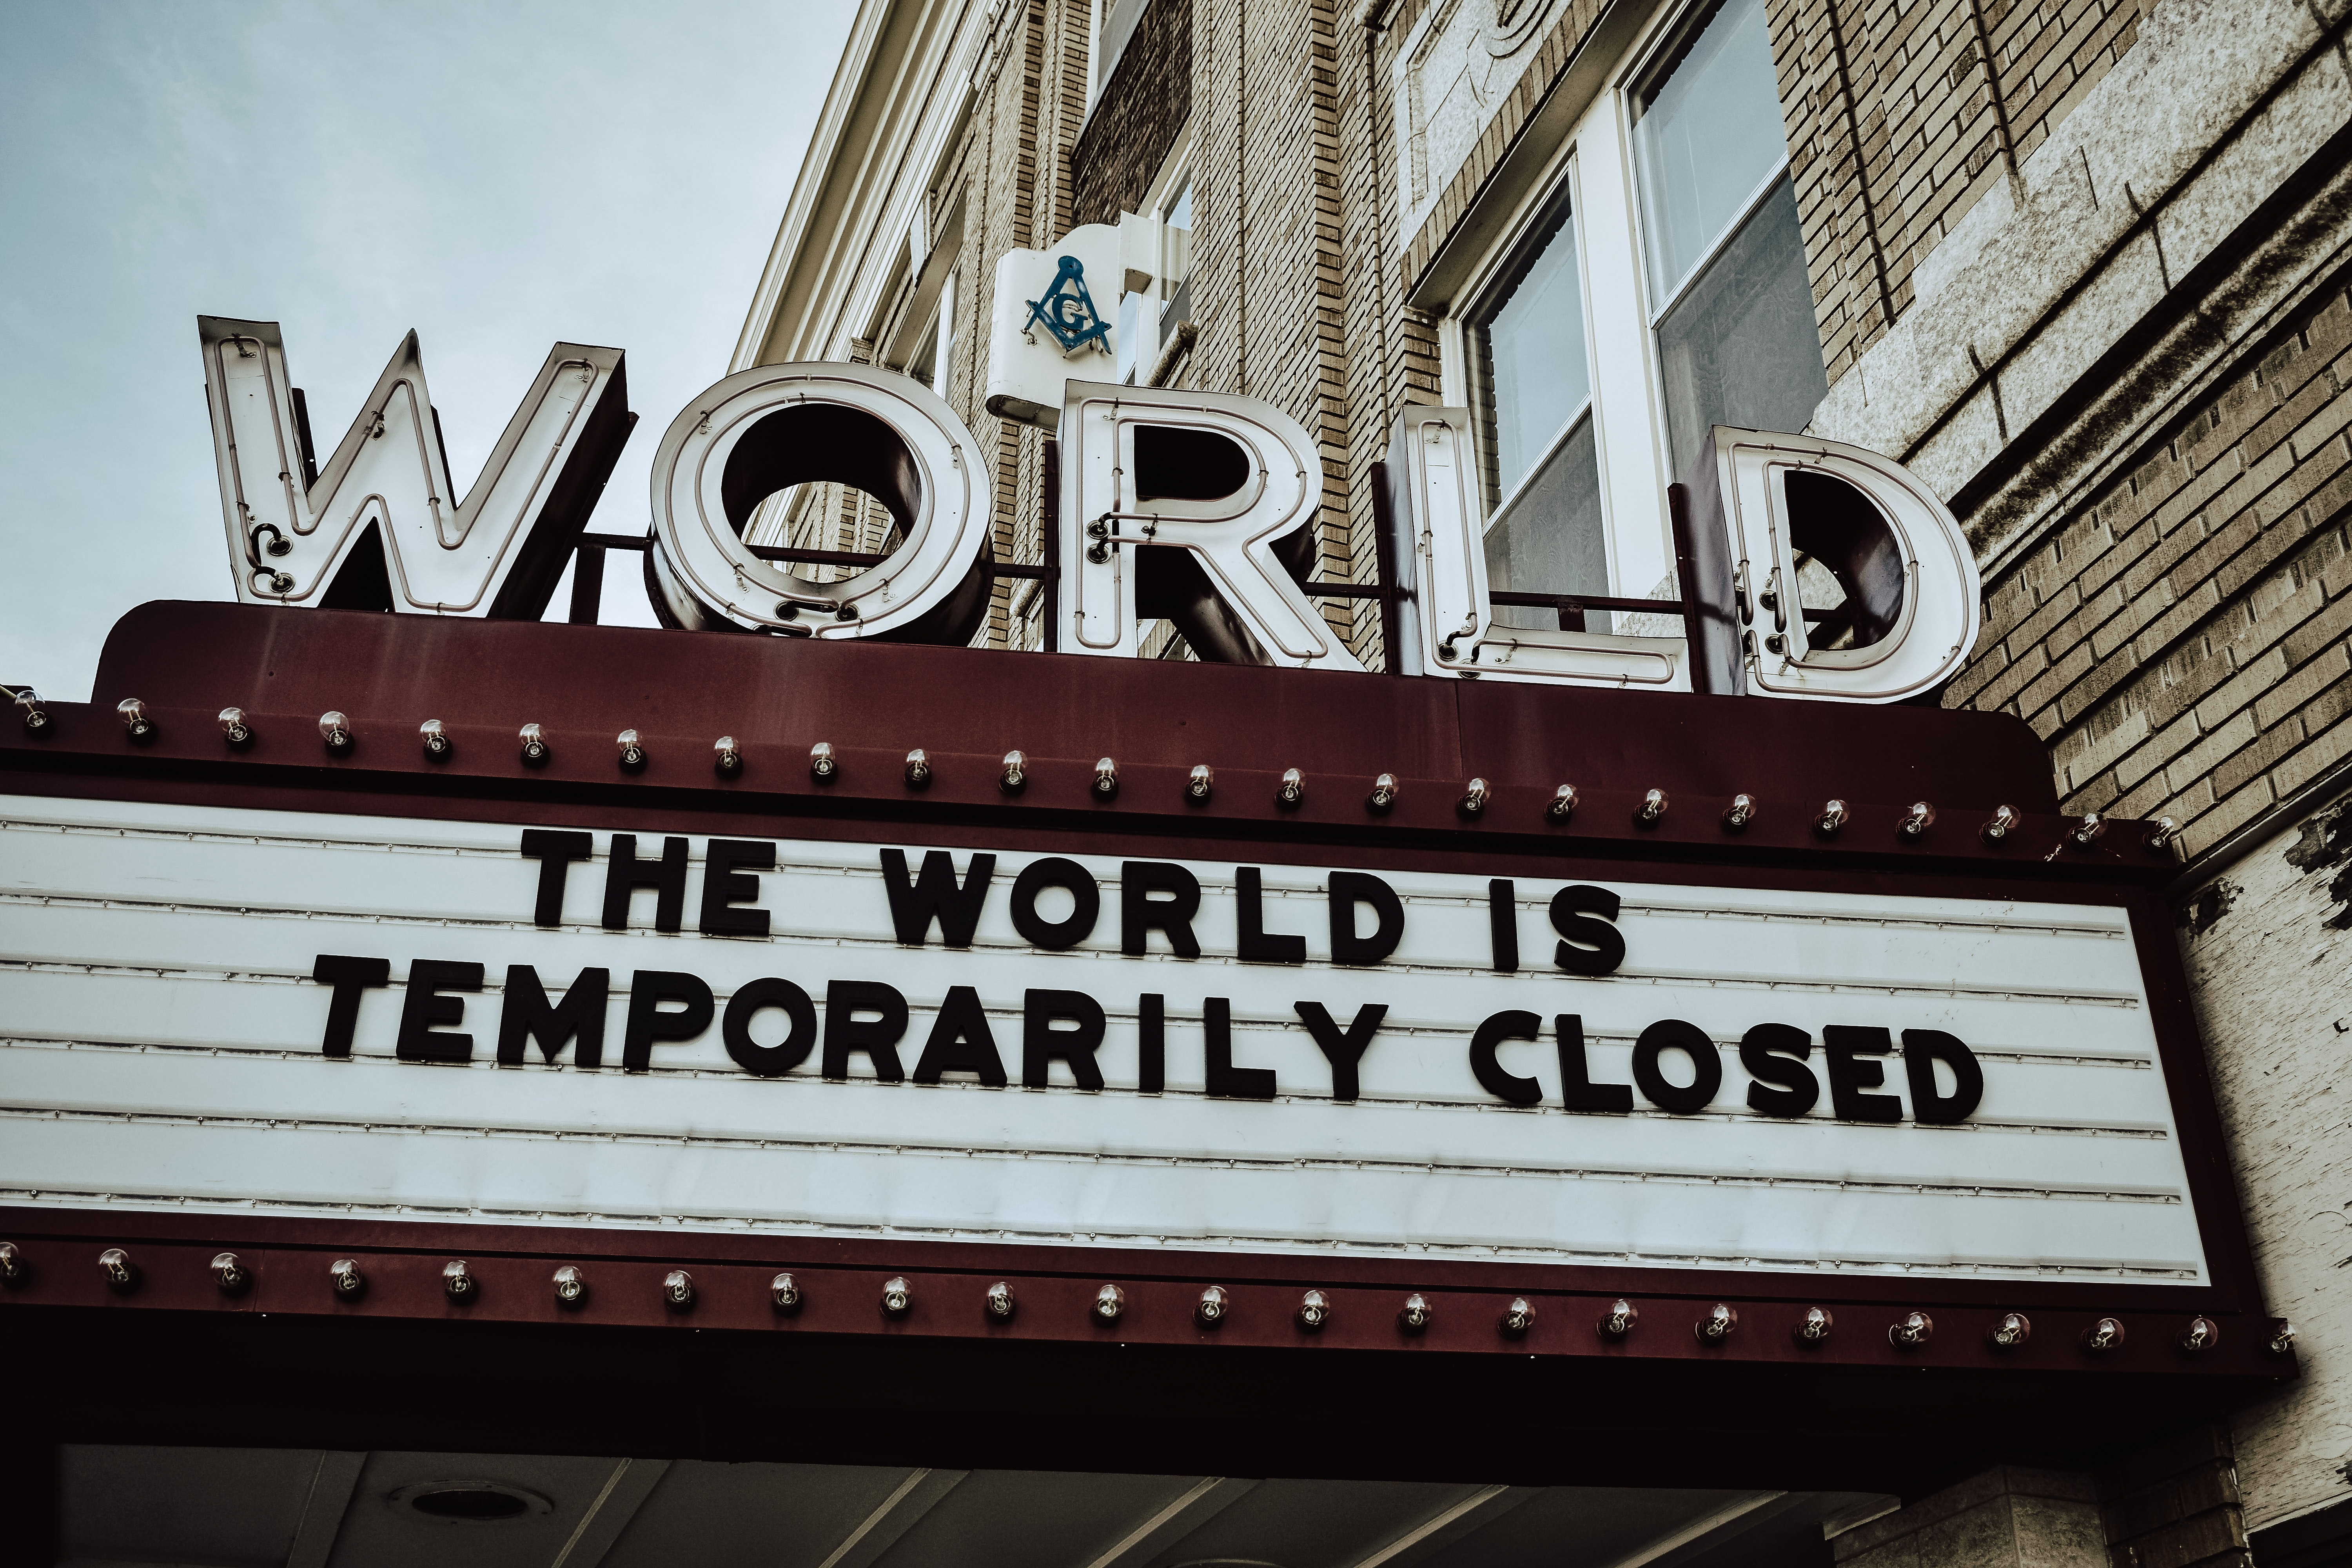 """Photo of a marquee sign that says """"The world is temporarily closed."""" Image courtesy of Edwin Hooper via Unsplash."""